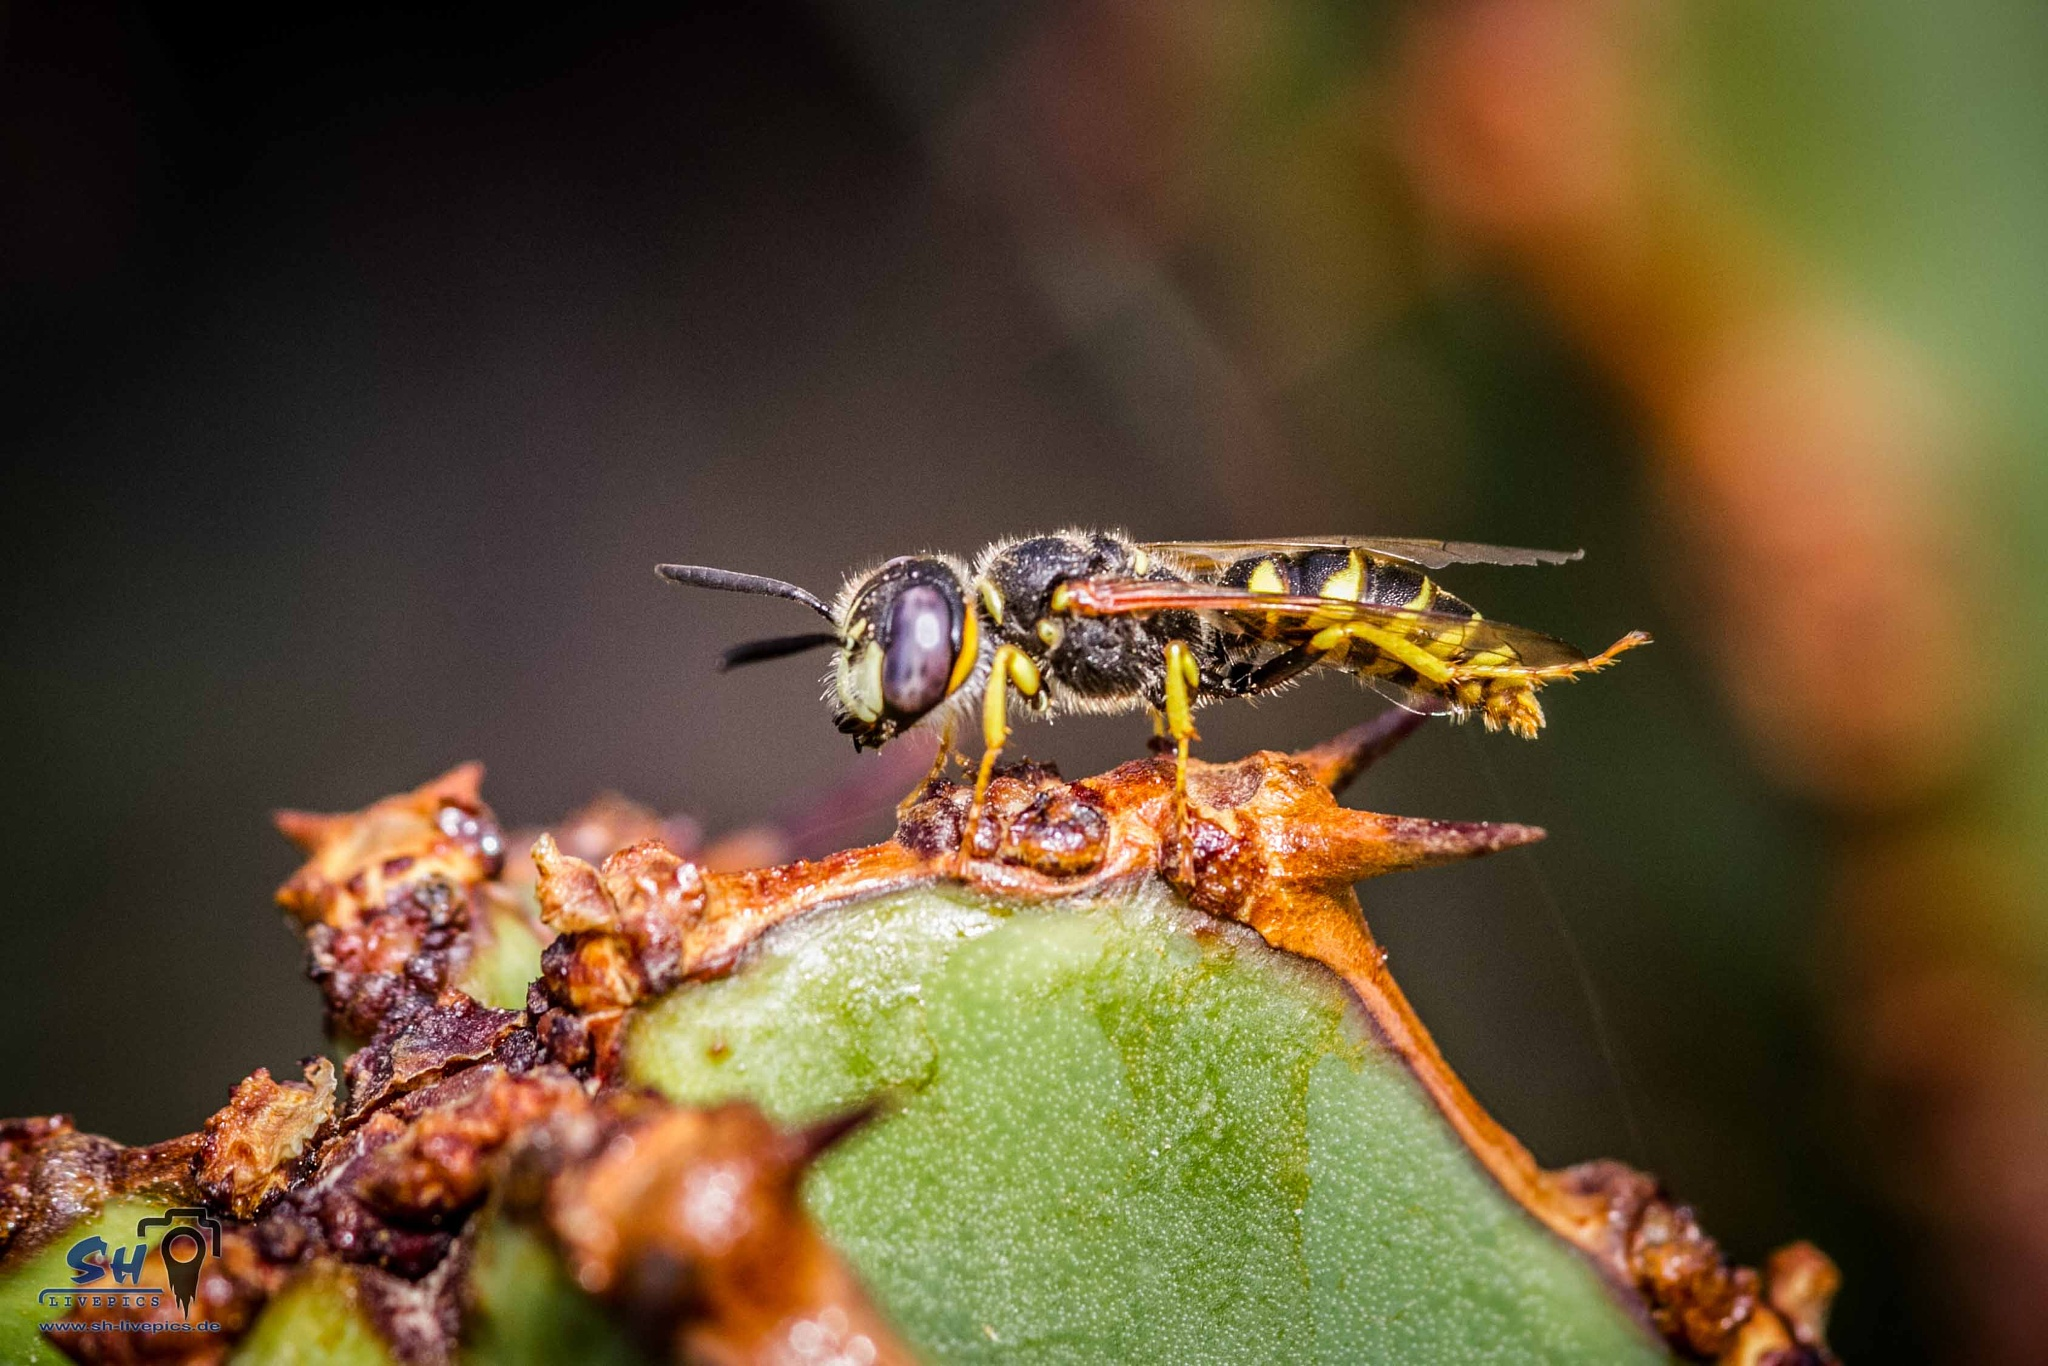 Wasp ... by SH Livepics